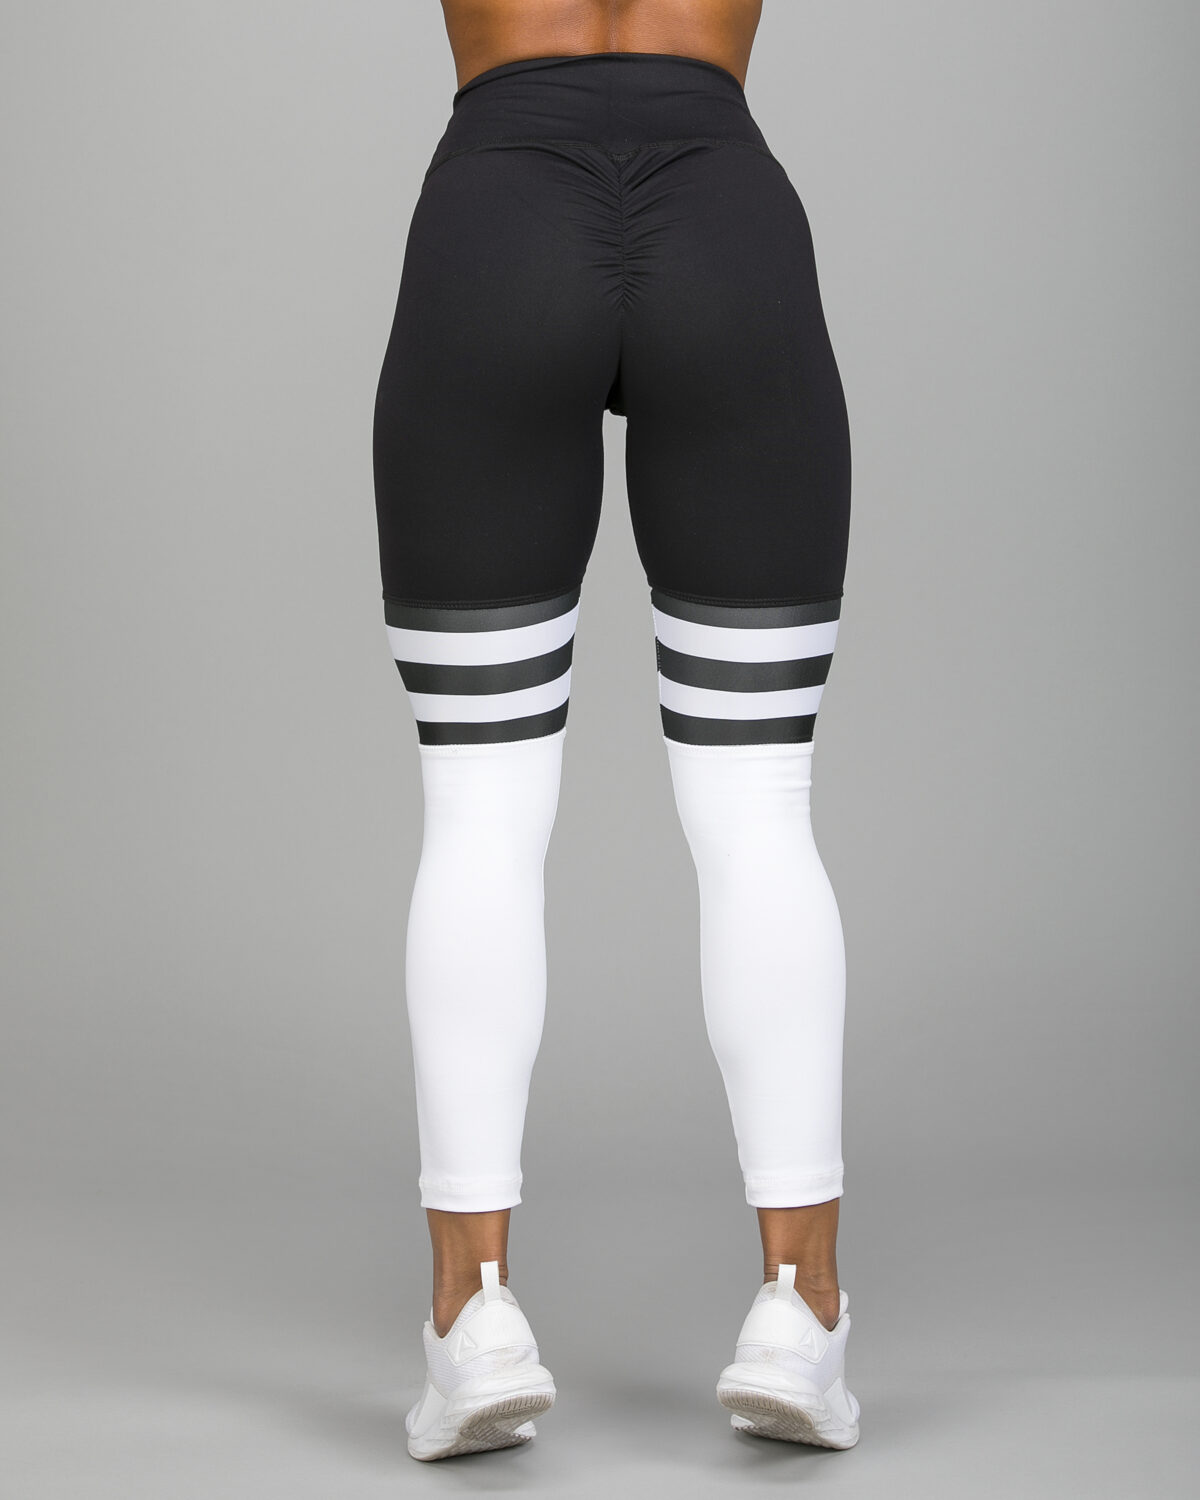 ABS2B-Fitness-High-Knee-Stripes-Black.White1_-1200×1500